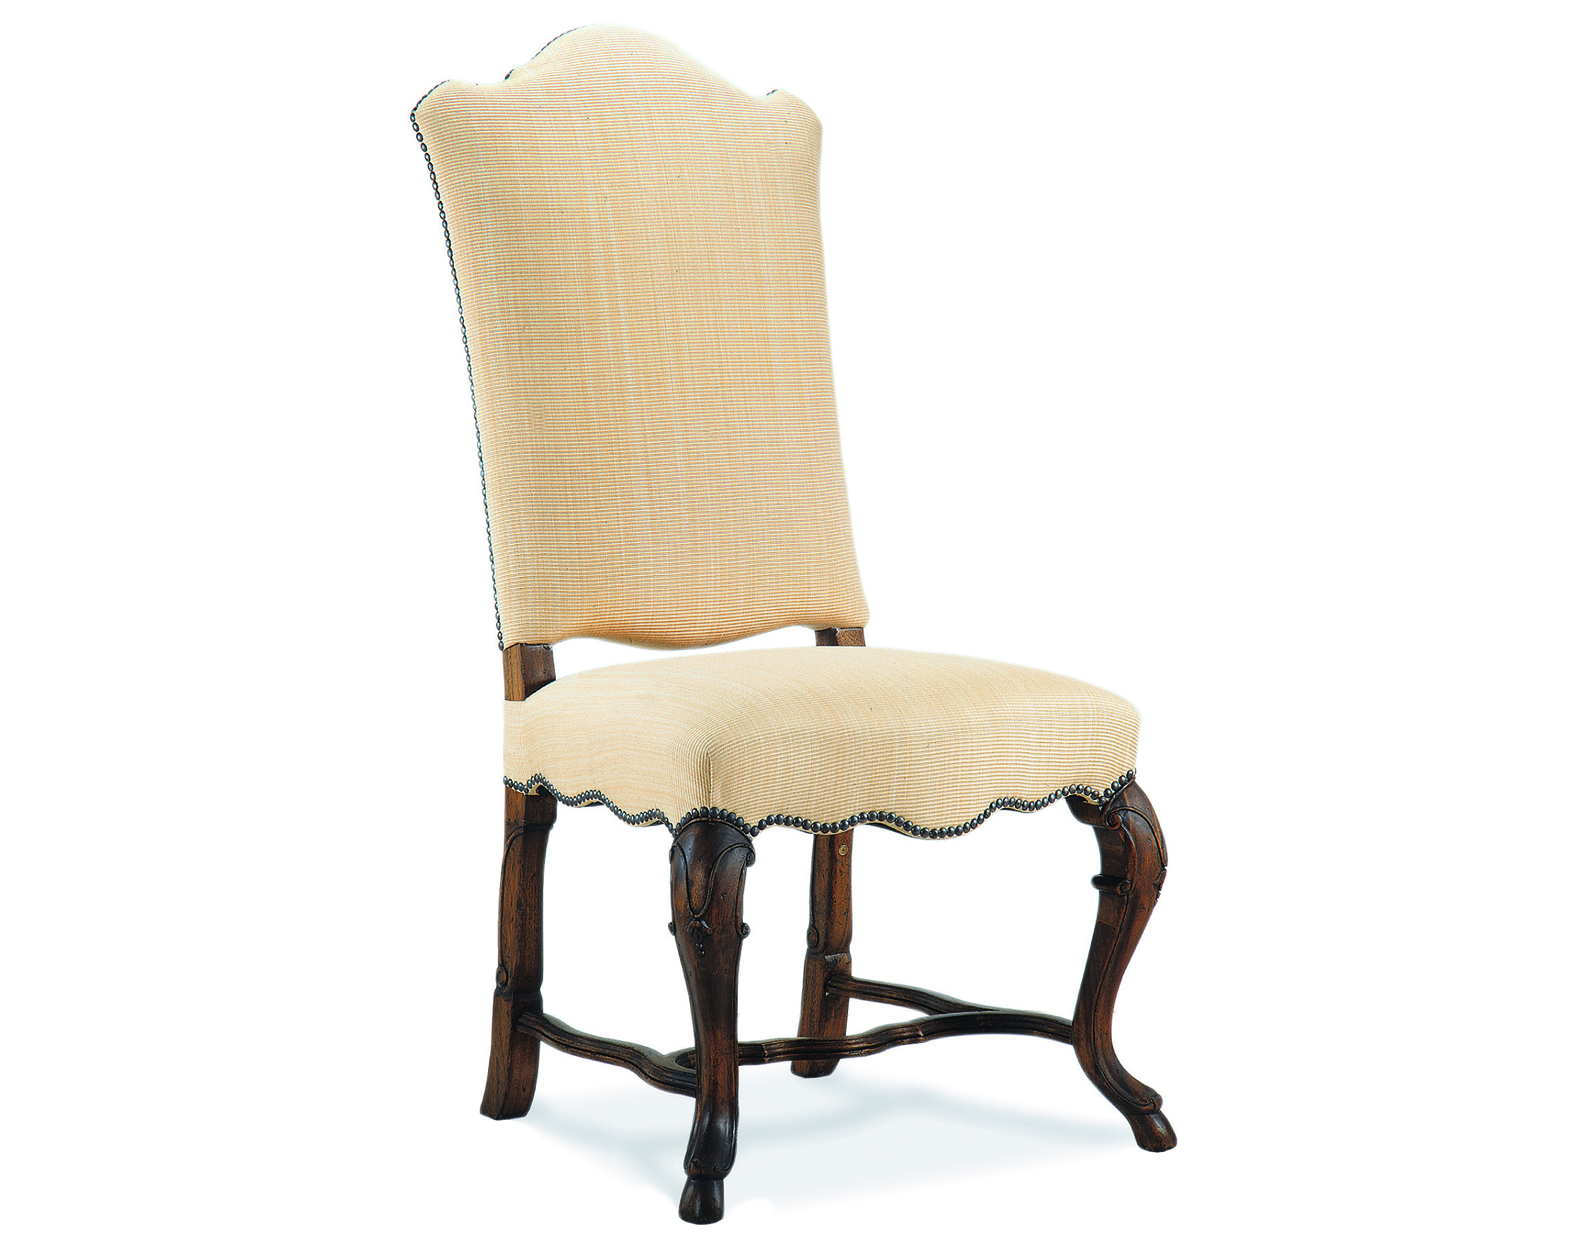 TREVISO SIDE CHAIR